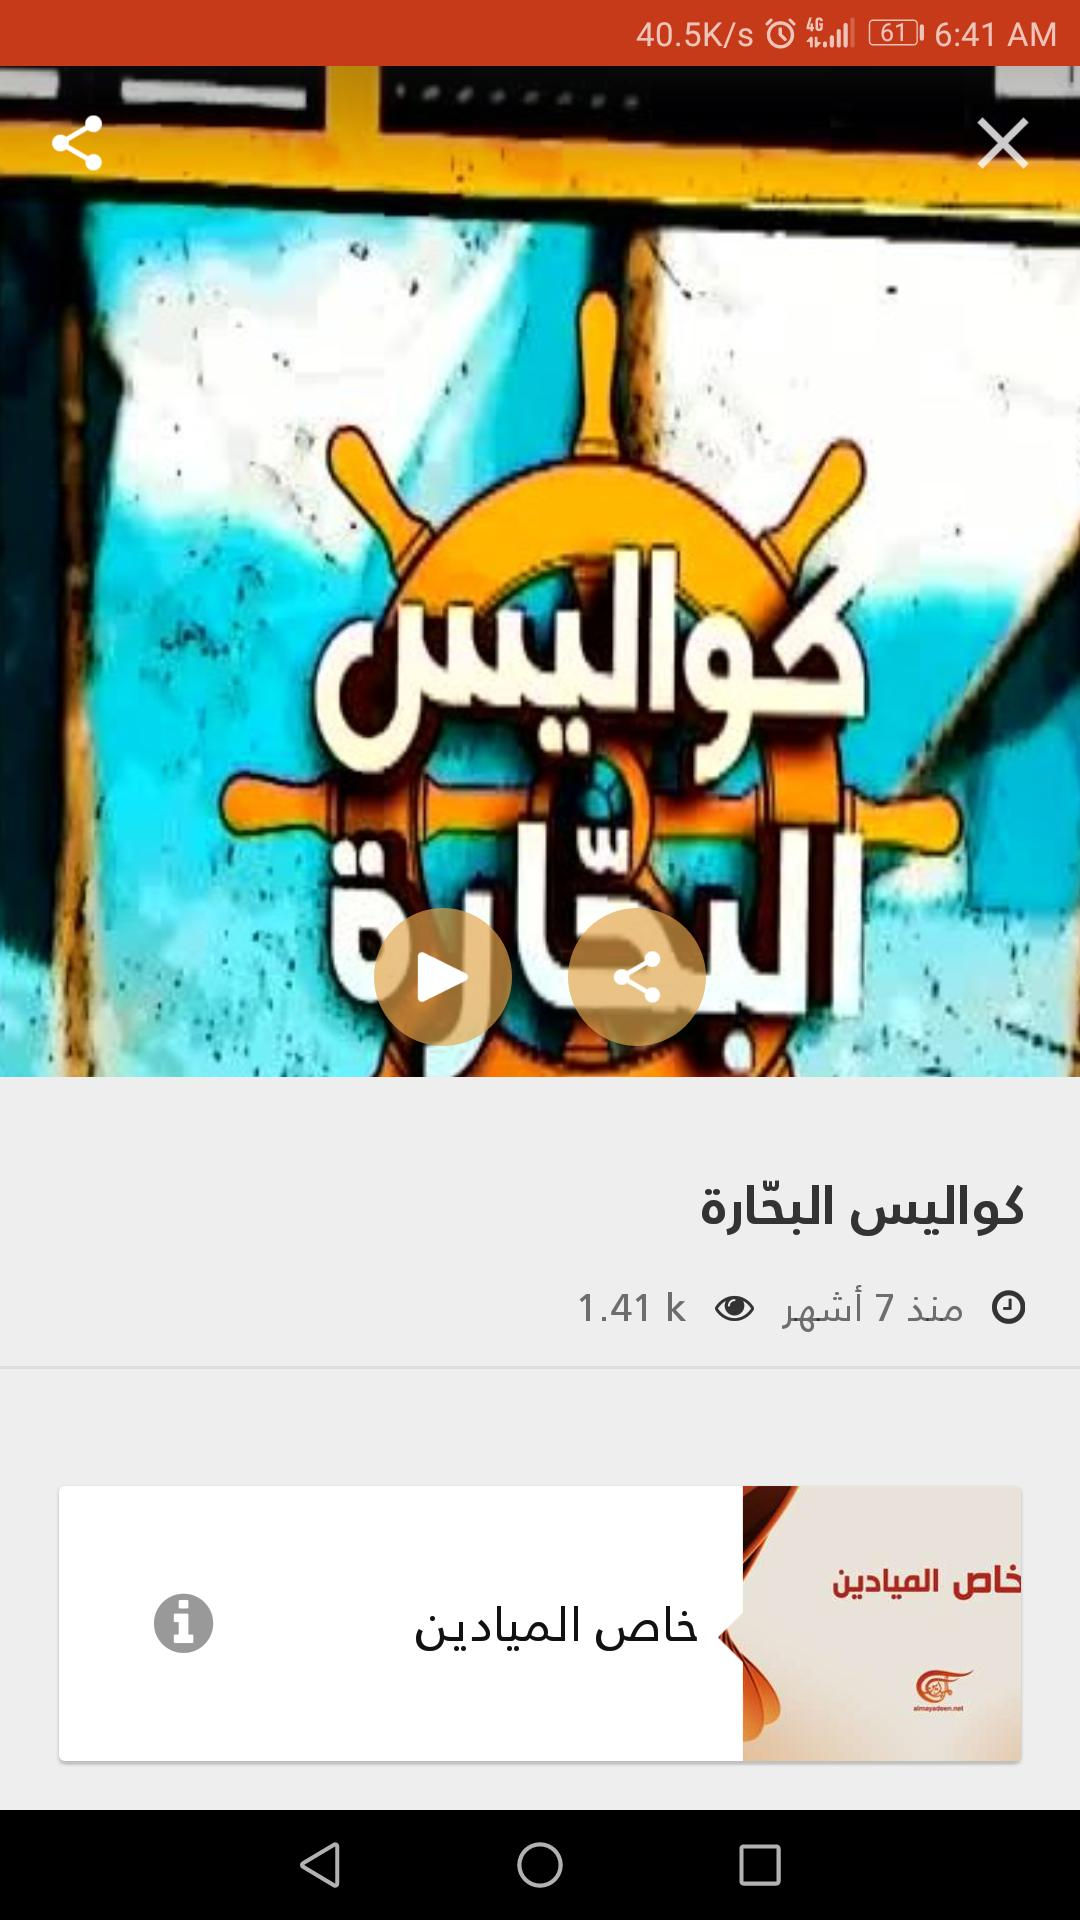 Al Mayadeen for Android - APK Download